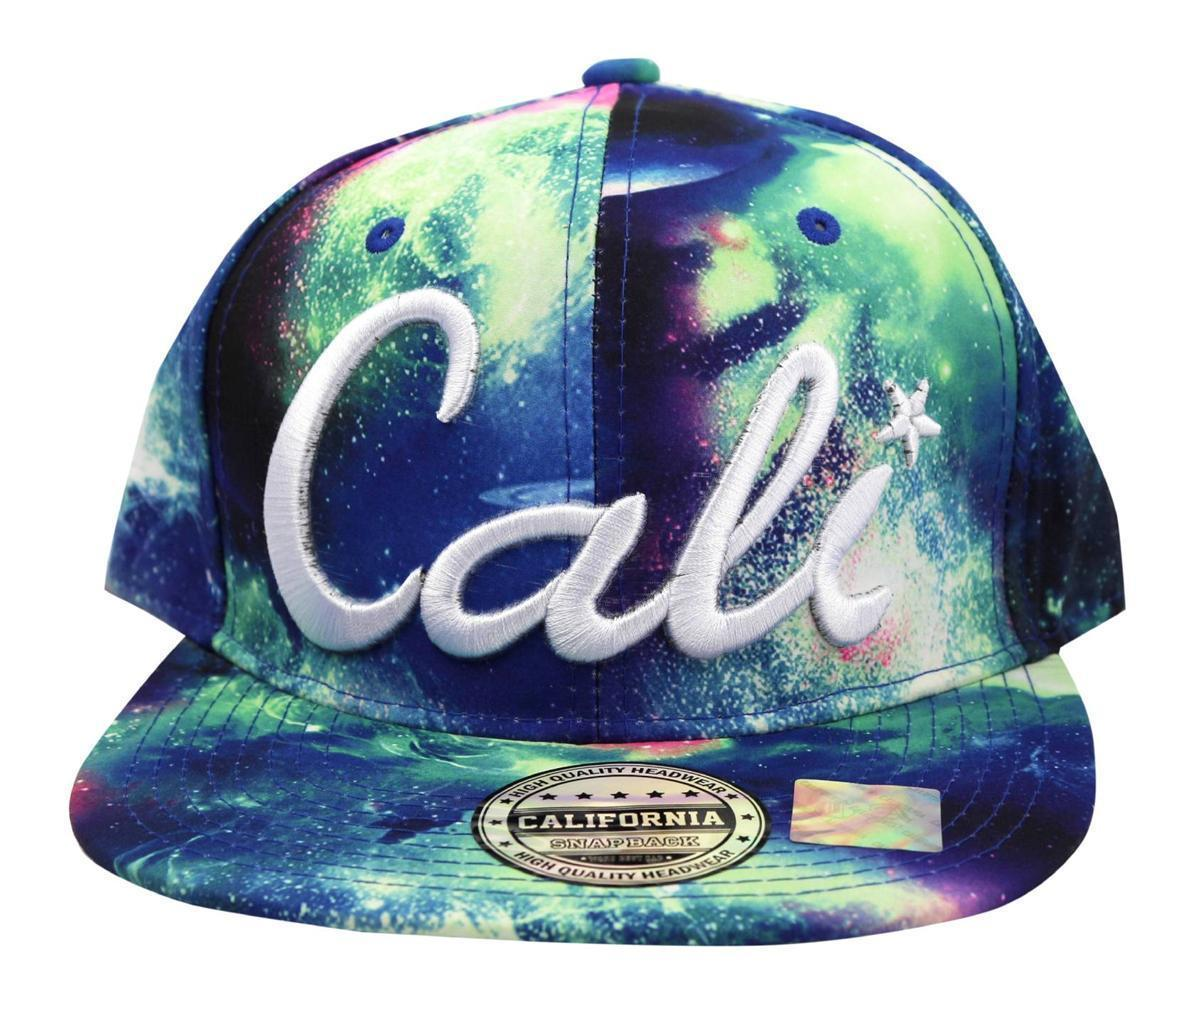 NEW UNISEX BASEBALL HAT CAP ADJUSTABLE SNAPBACK SWAG CALI SPACE BLUE ONE SIZE